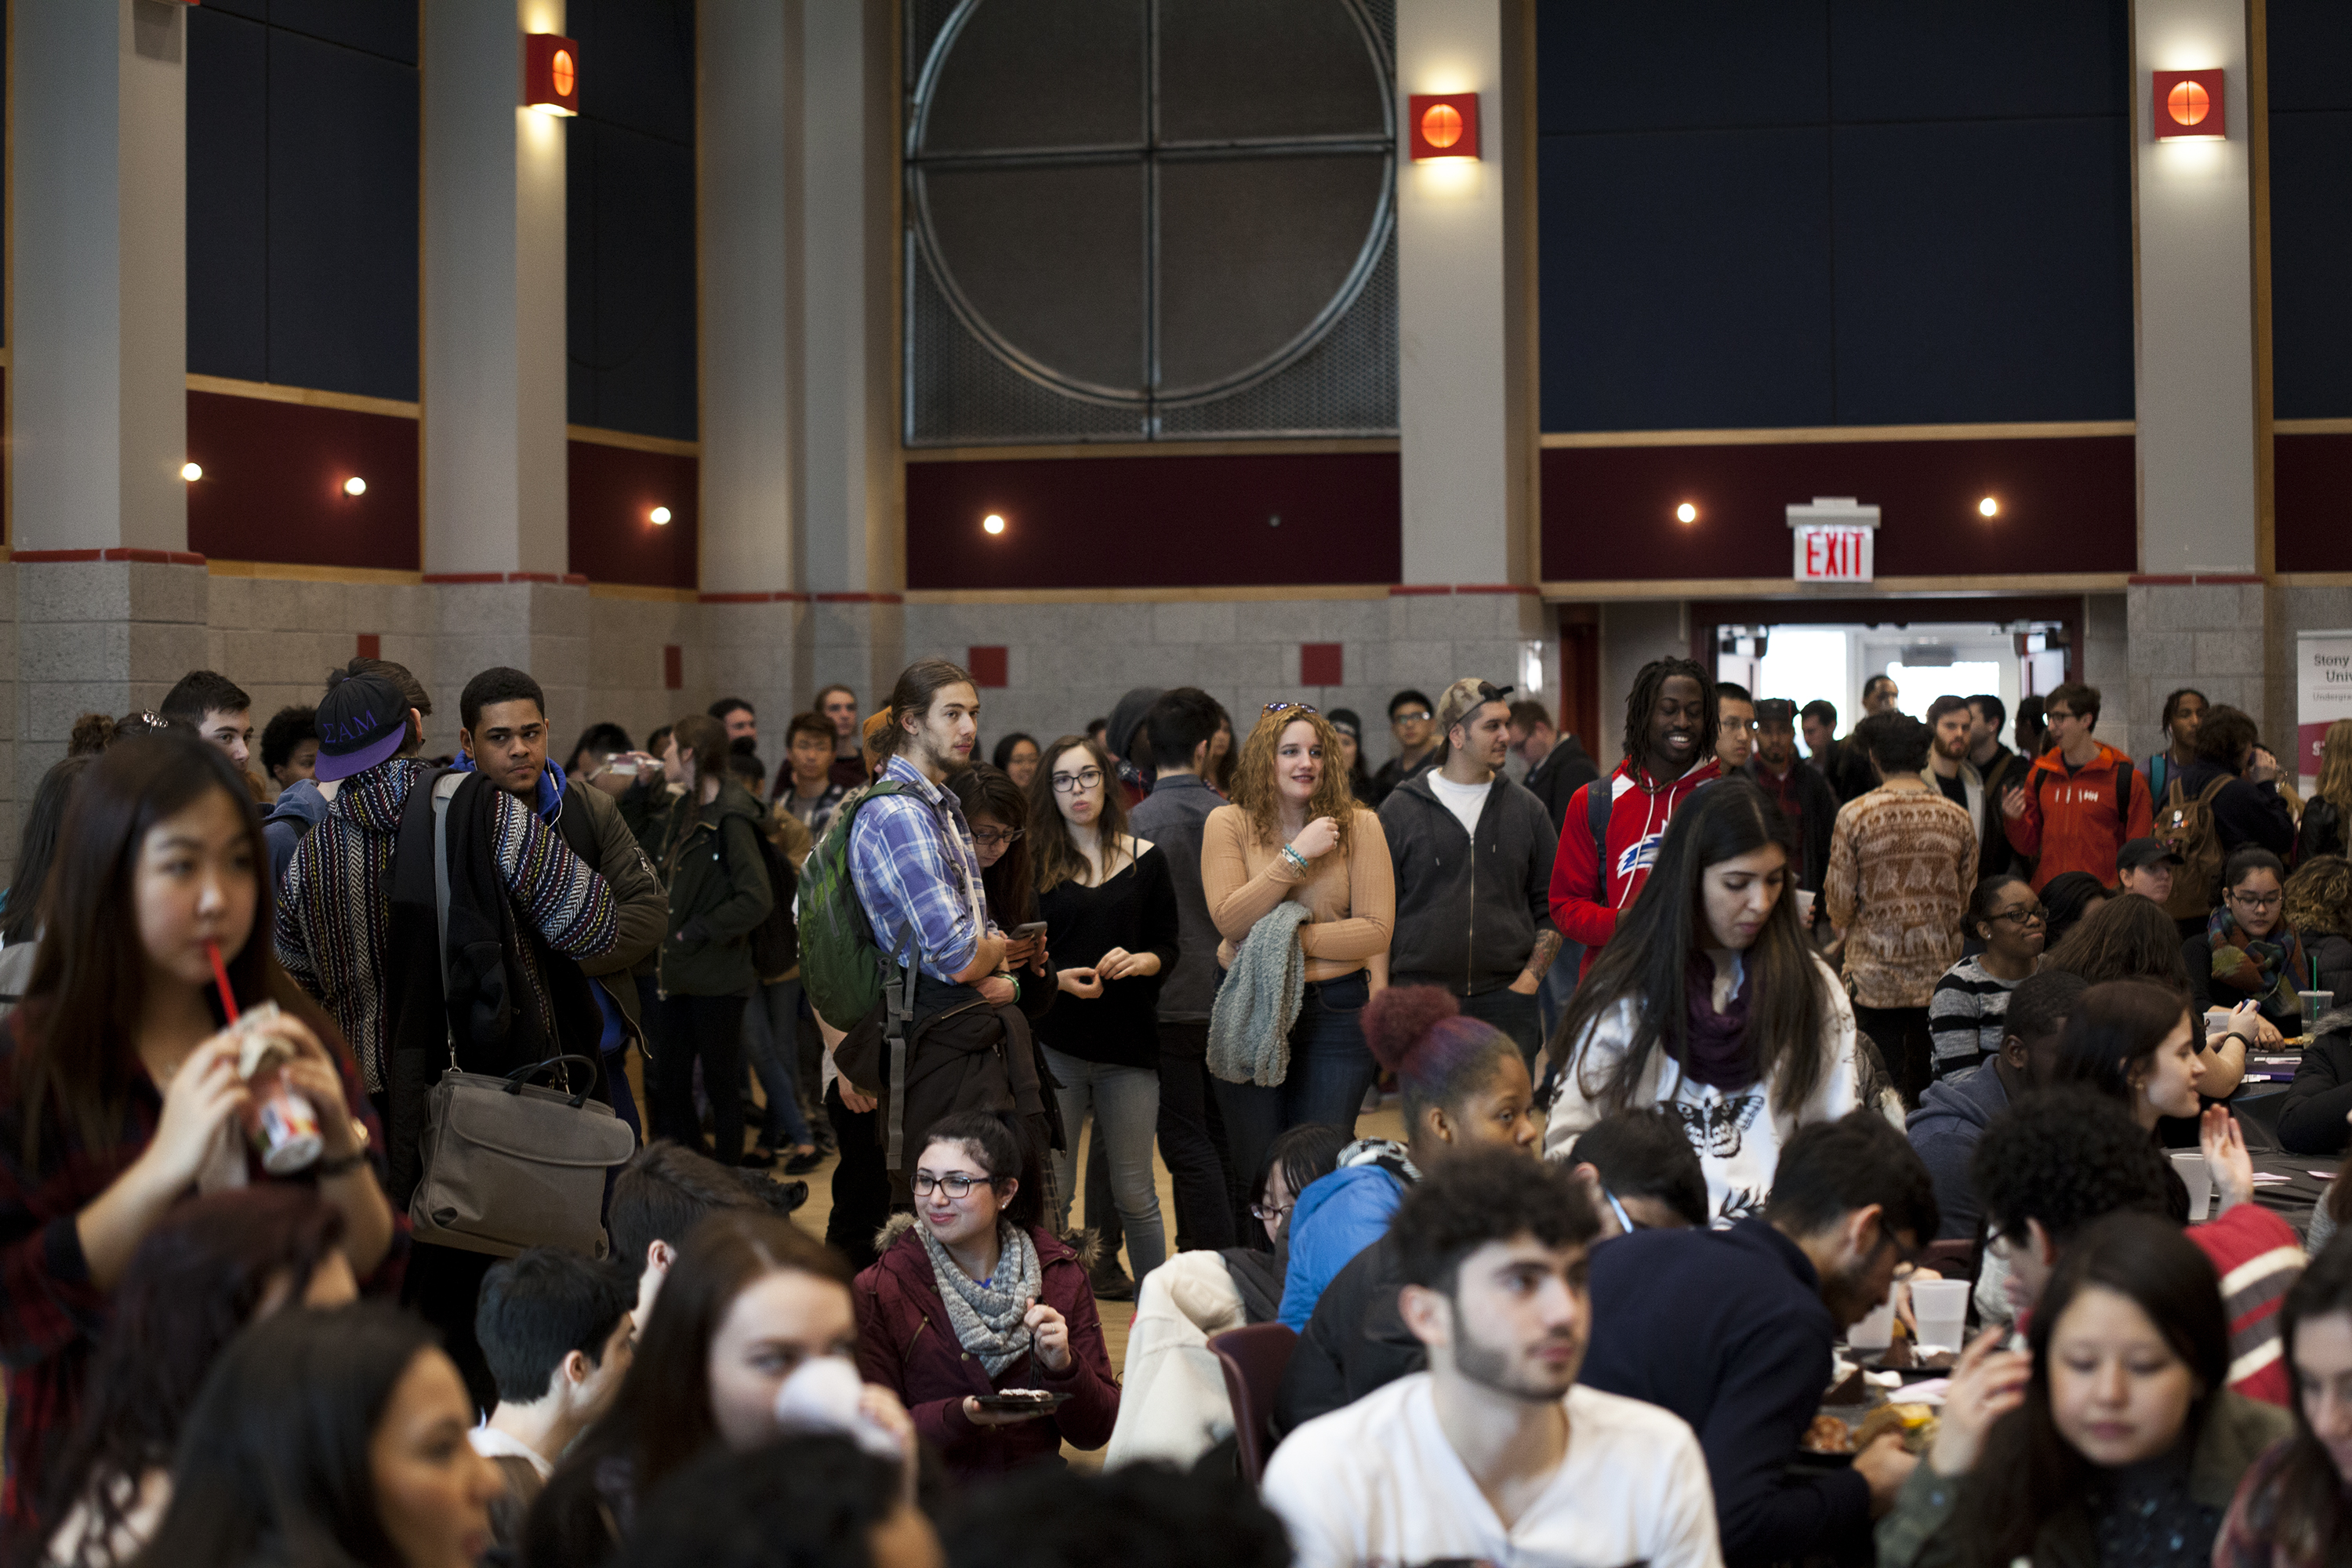 Hundreds of students crowded SAC Ballroom A for the Brookfest Artist Release Party hosted by USG. The event featured student performers who competed for the opening act spot at Brookfest 2016.<em>ERIC SCHMID/THE STATESMAN</em>